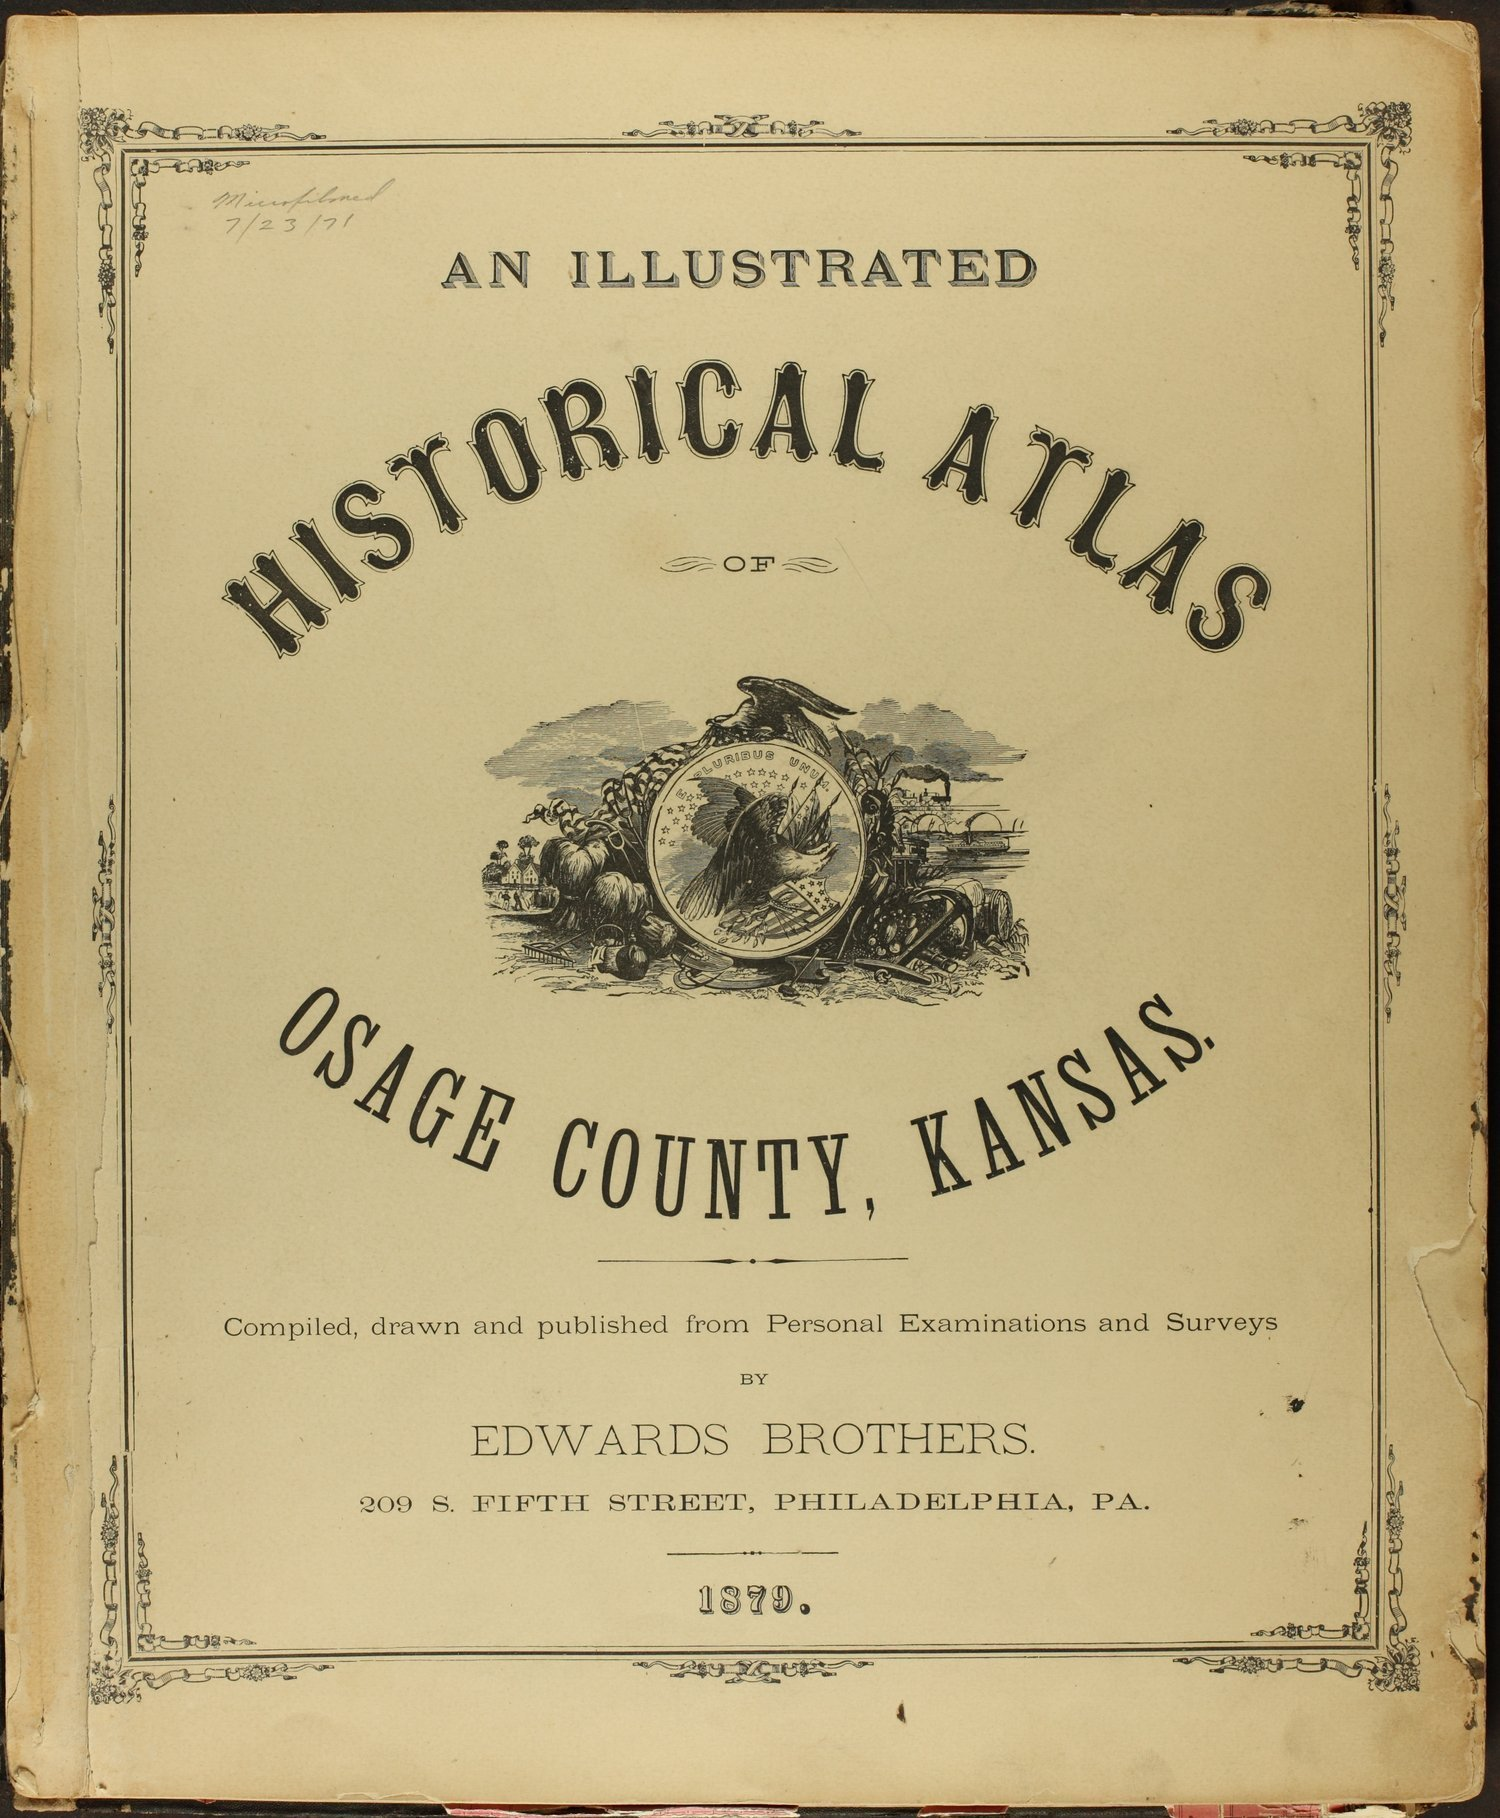 An illustrated historical atlas of Osage County, Kansas - Title Page